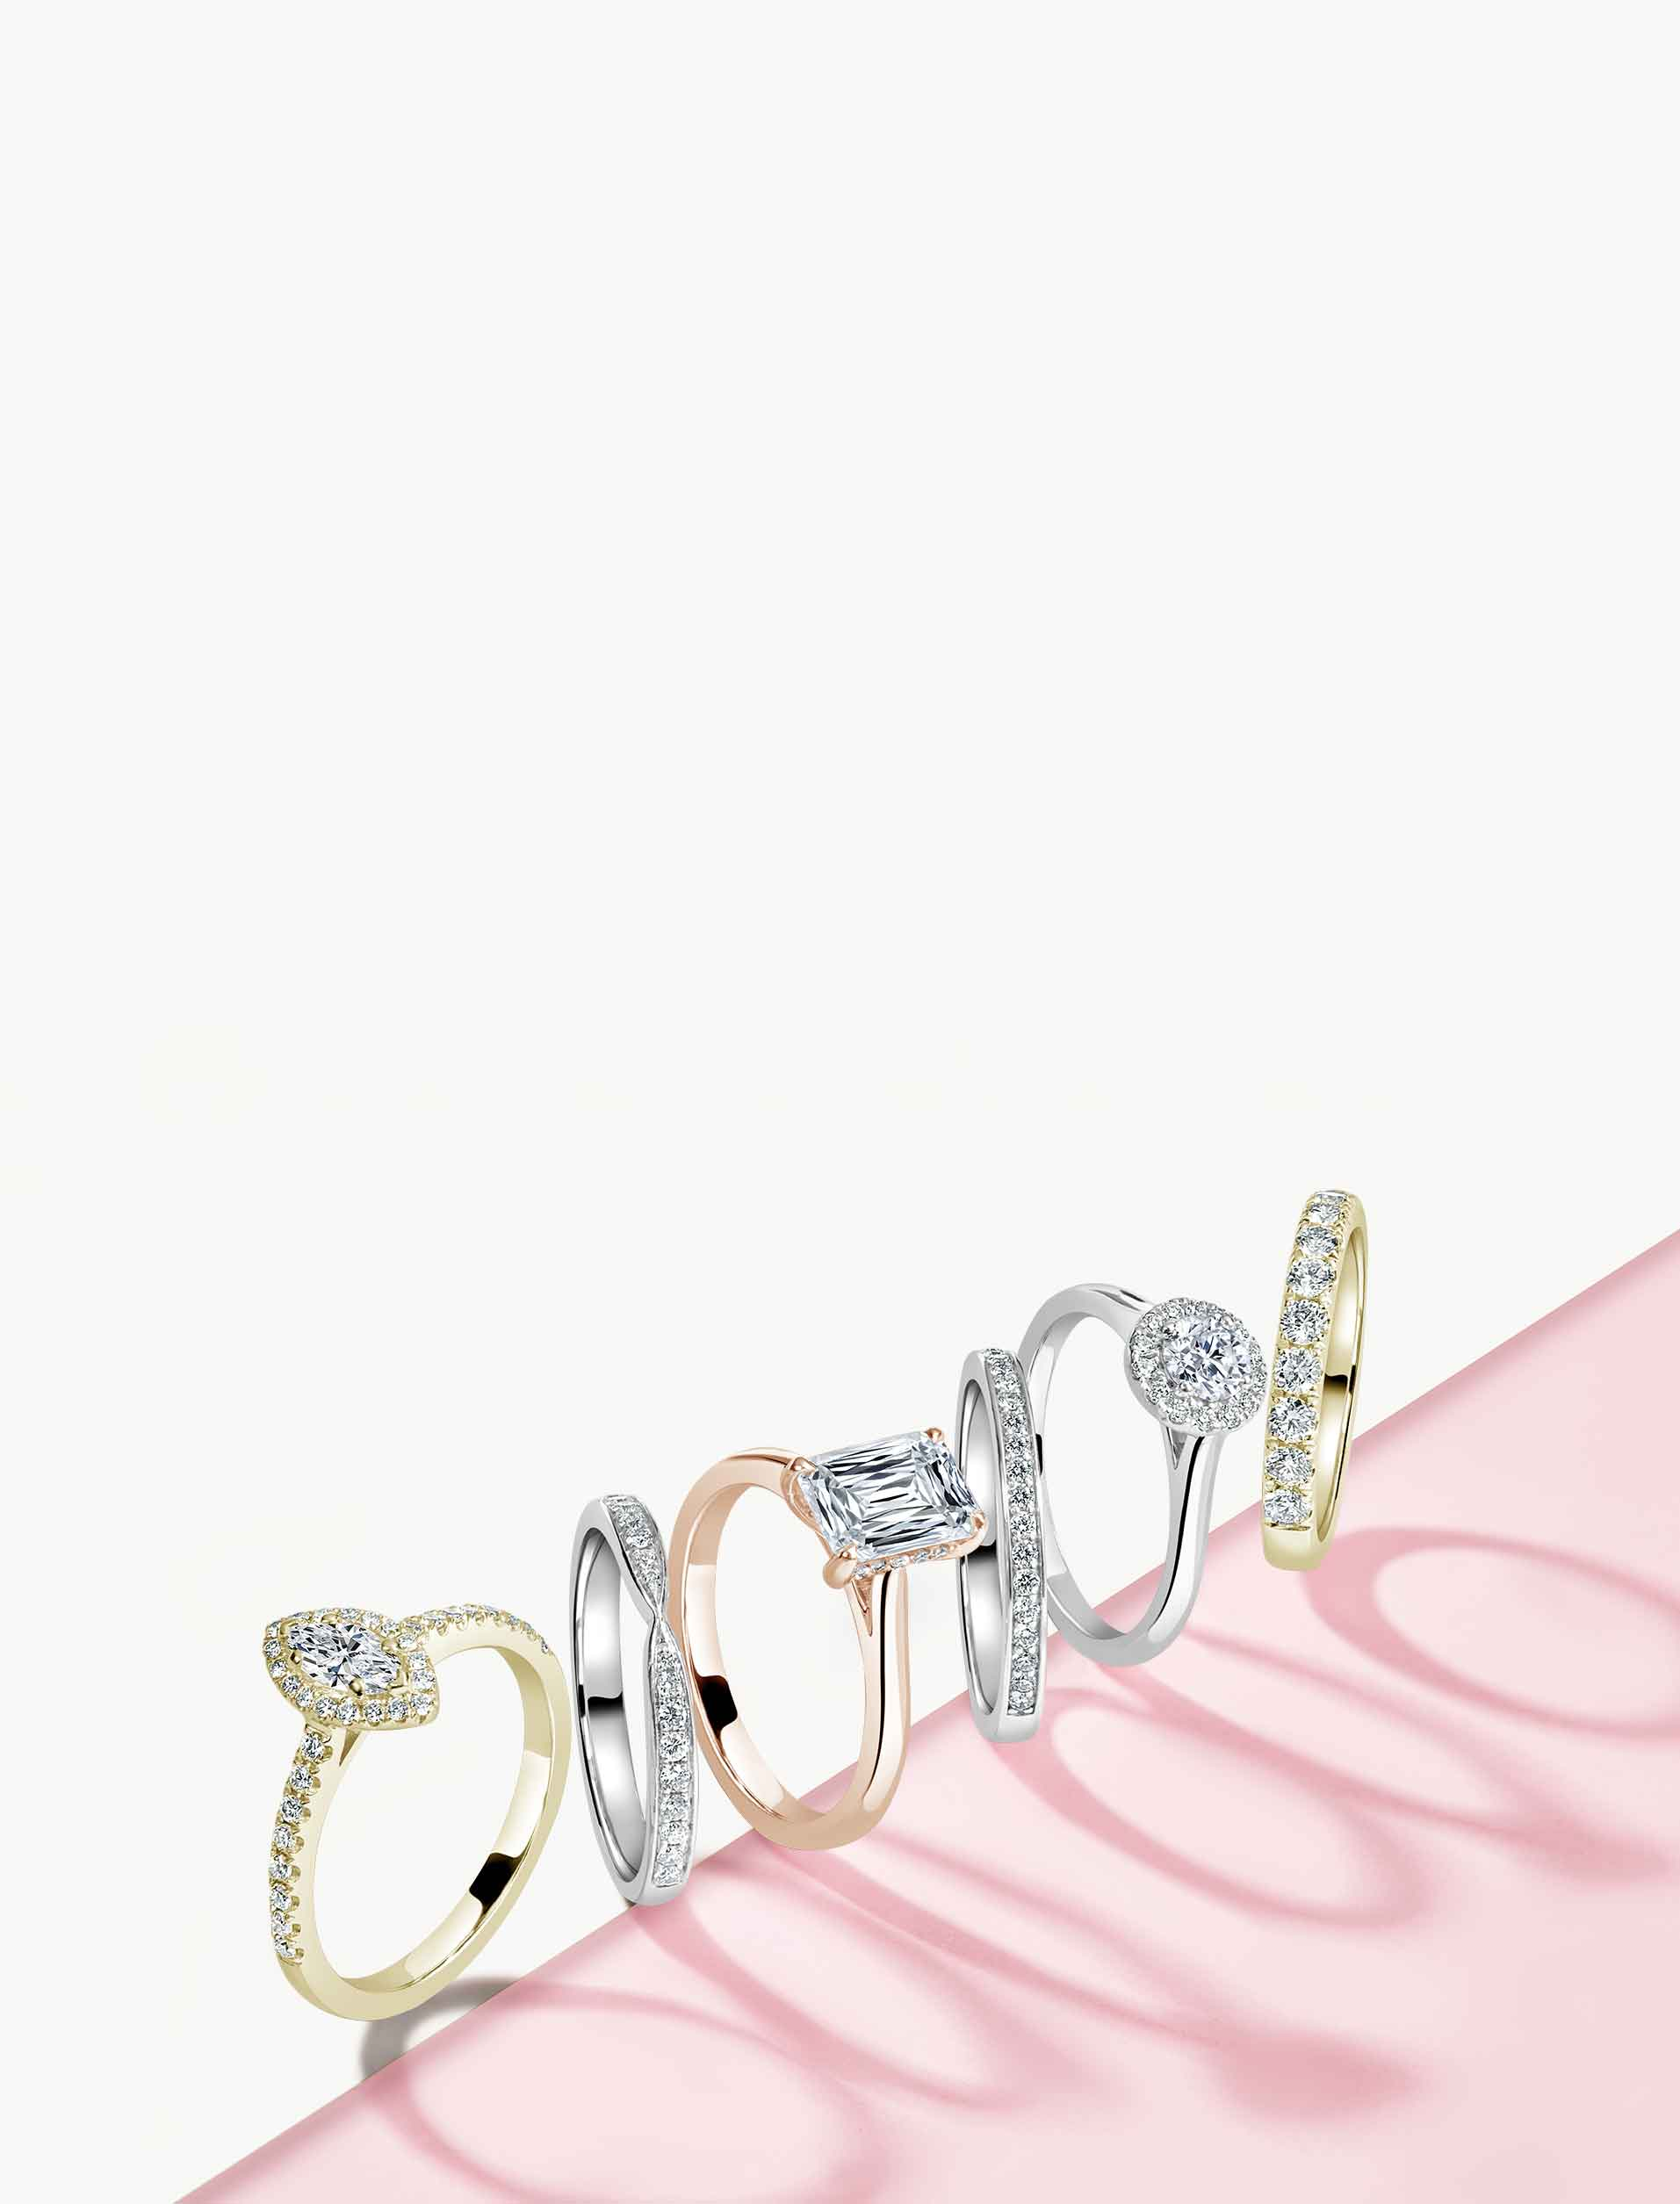 Radiant Cut Engagement Rings - Steven Stone